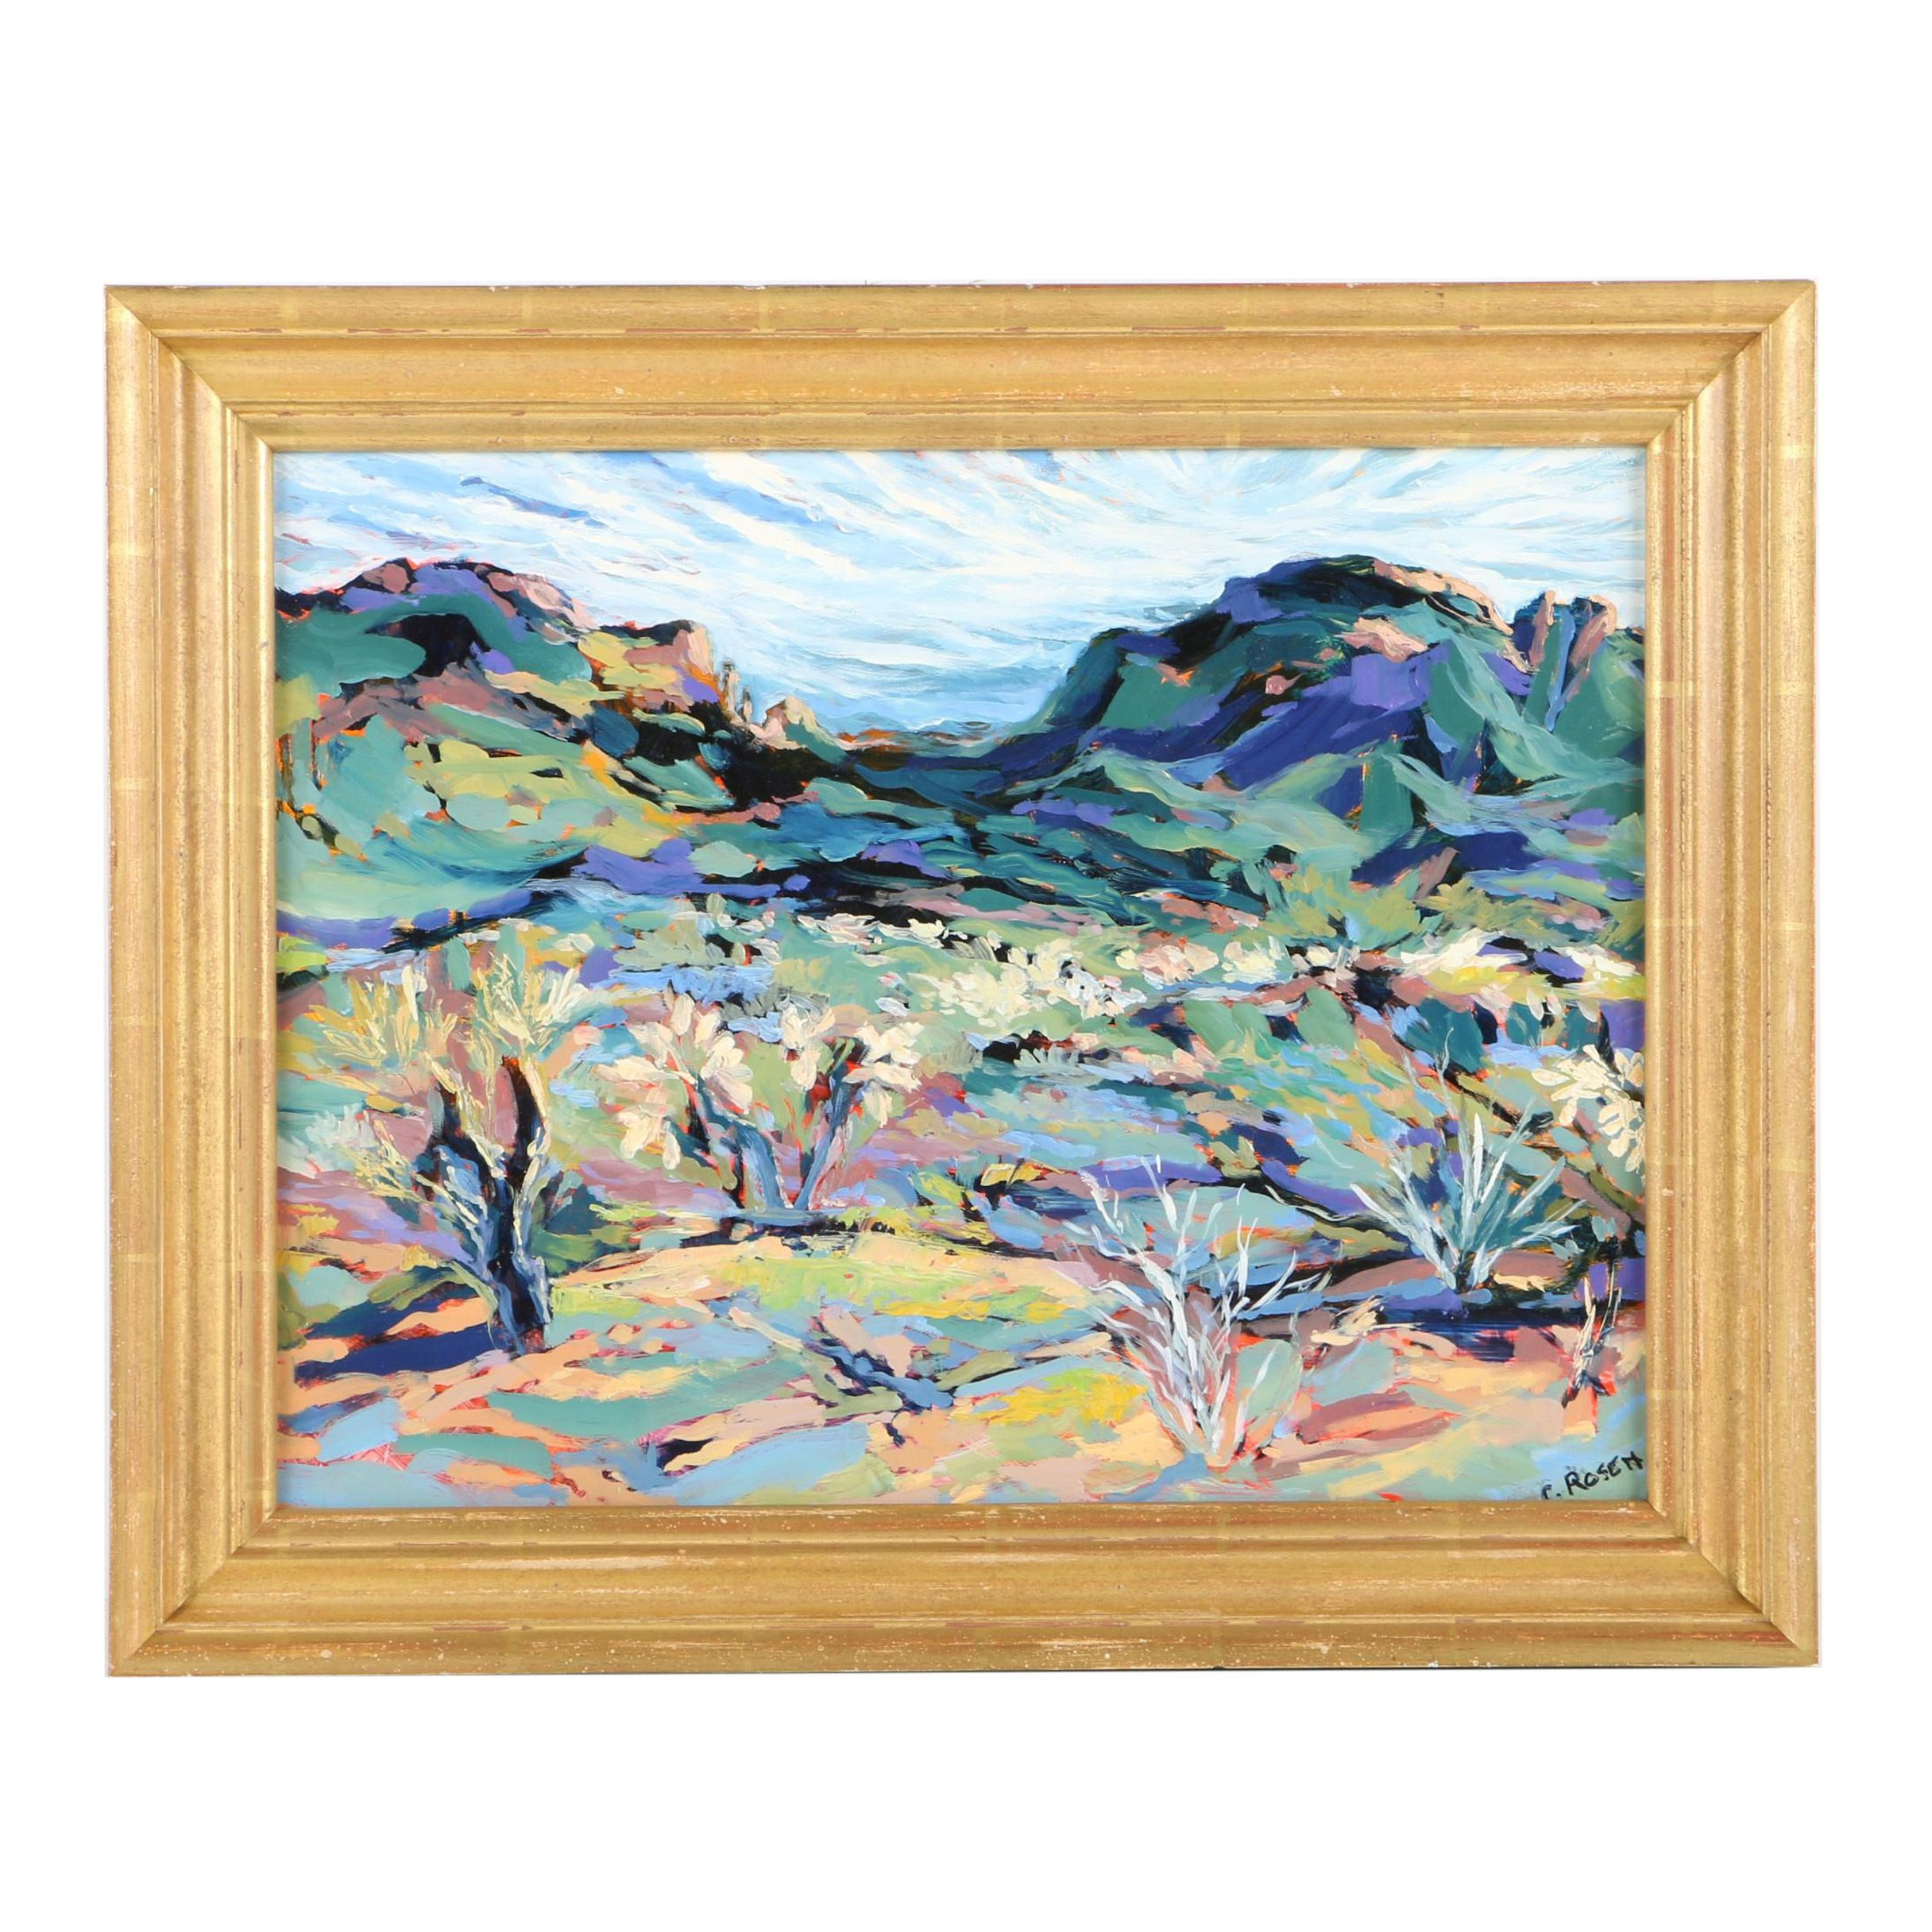 Rosen Oil Painting on Board of an Abstract Mountain Landscape